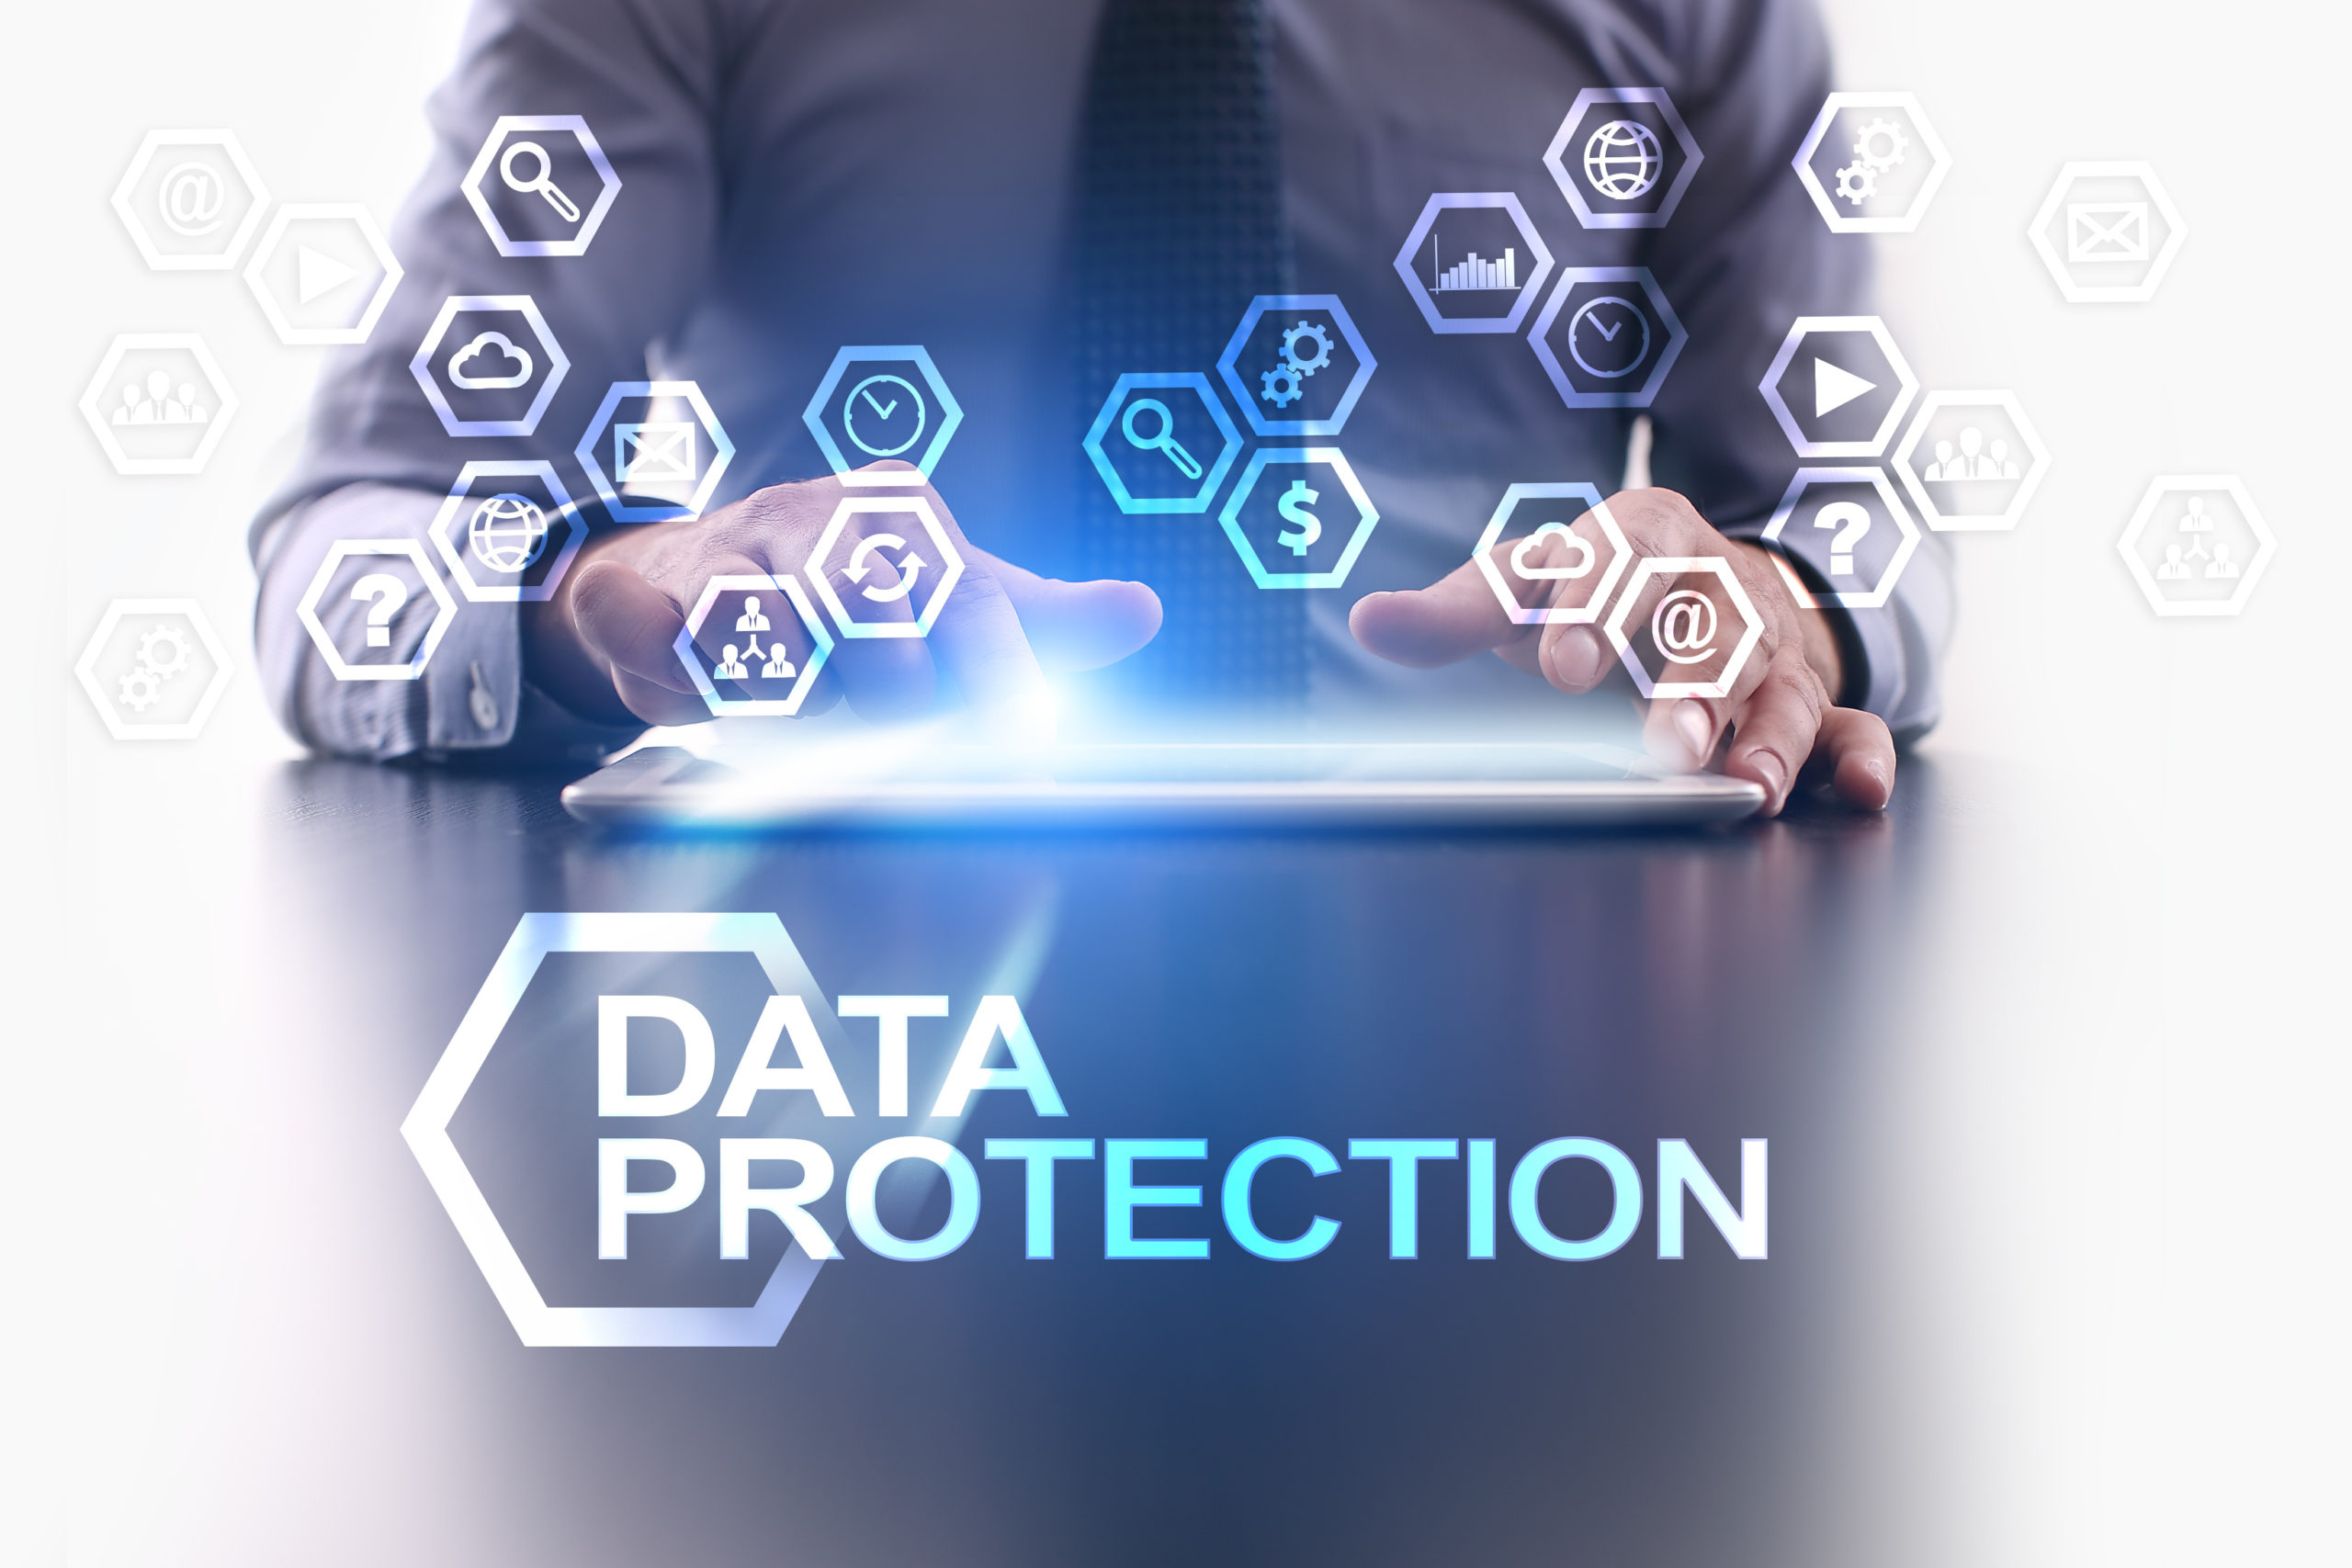 data-protection-data-management-entreprise-daqsan-gestion-des-donnees.jpeg